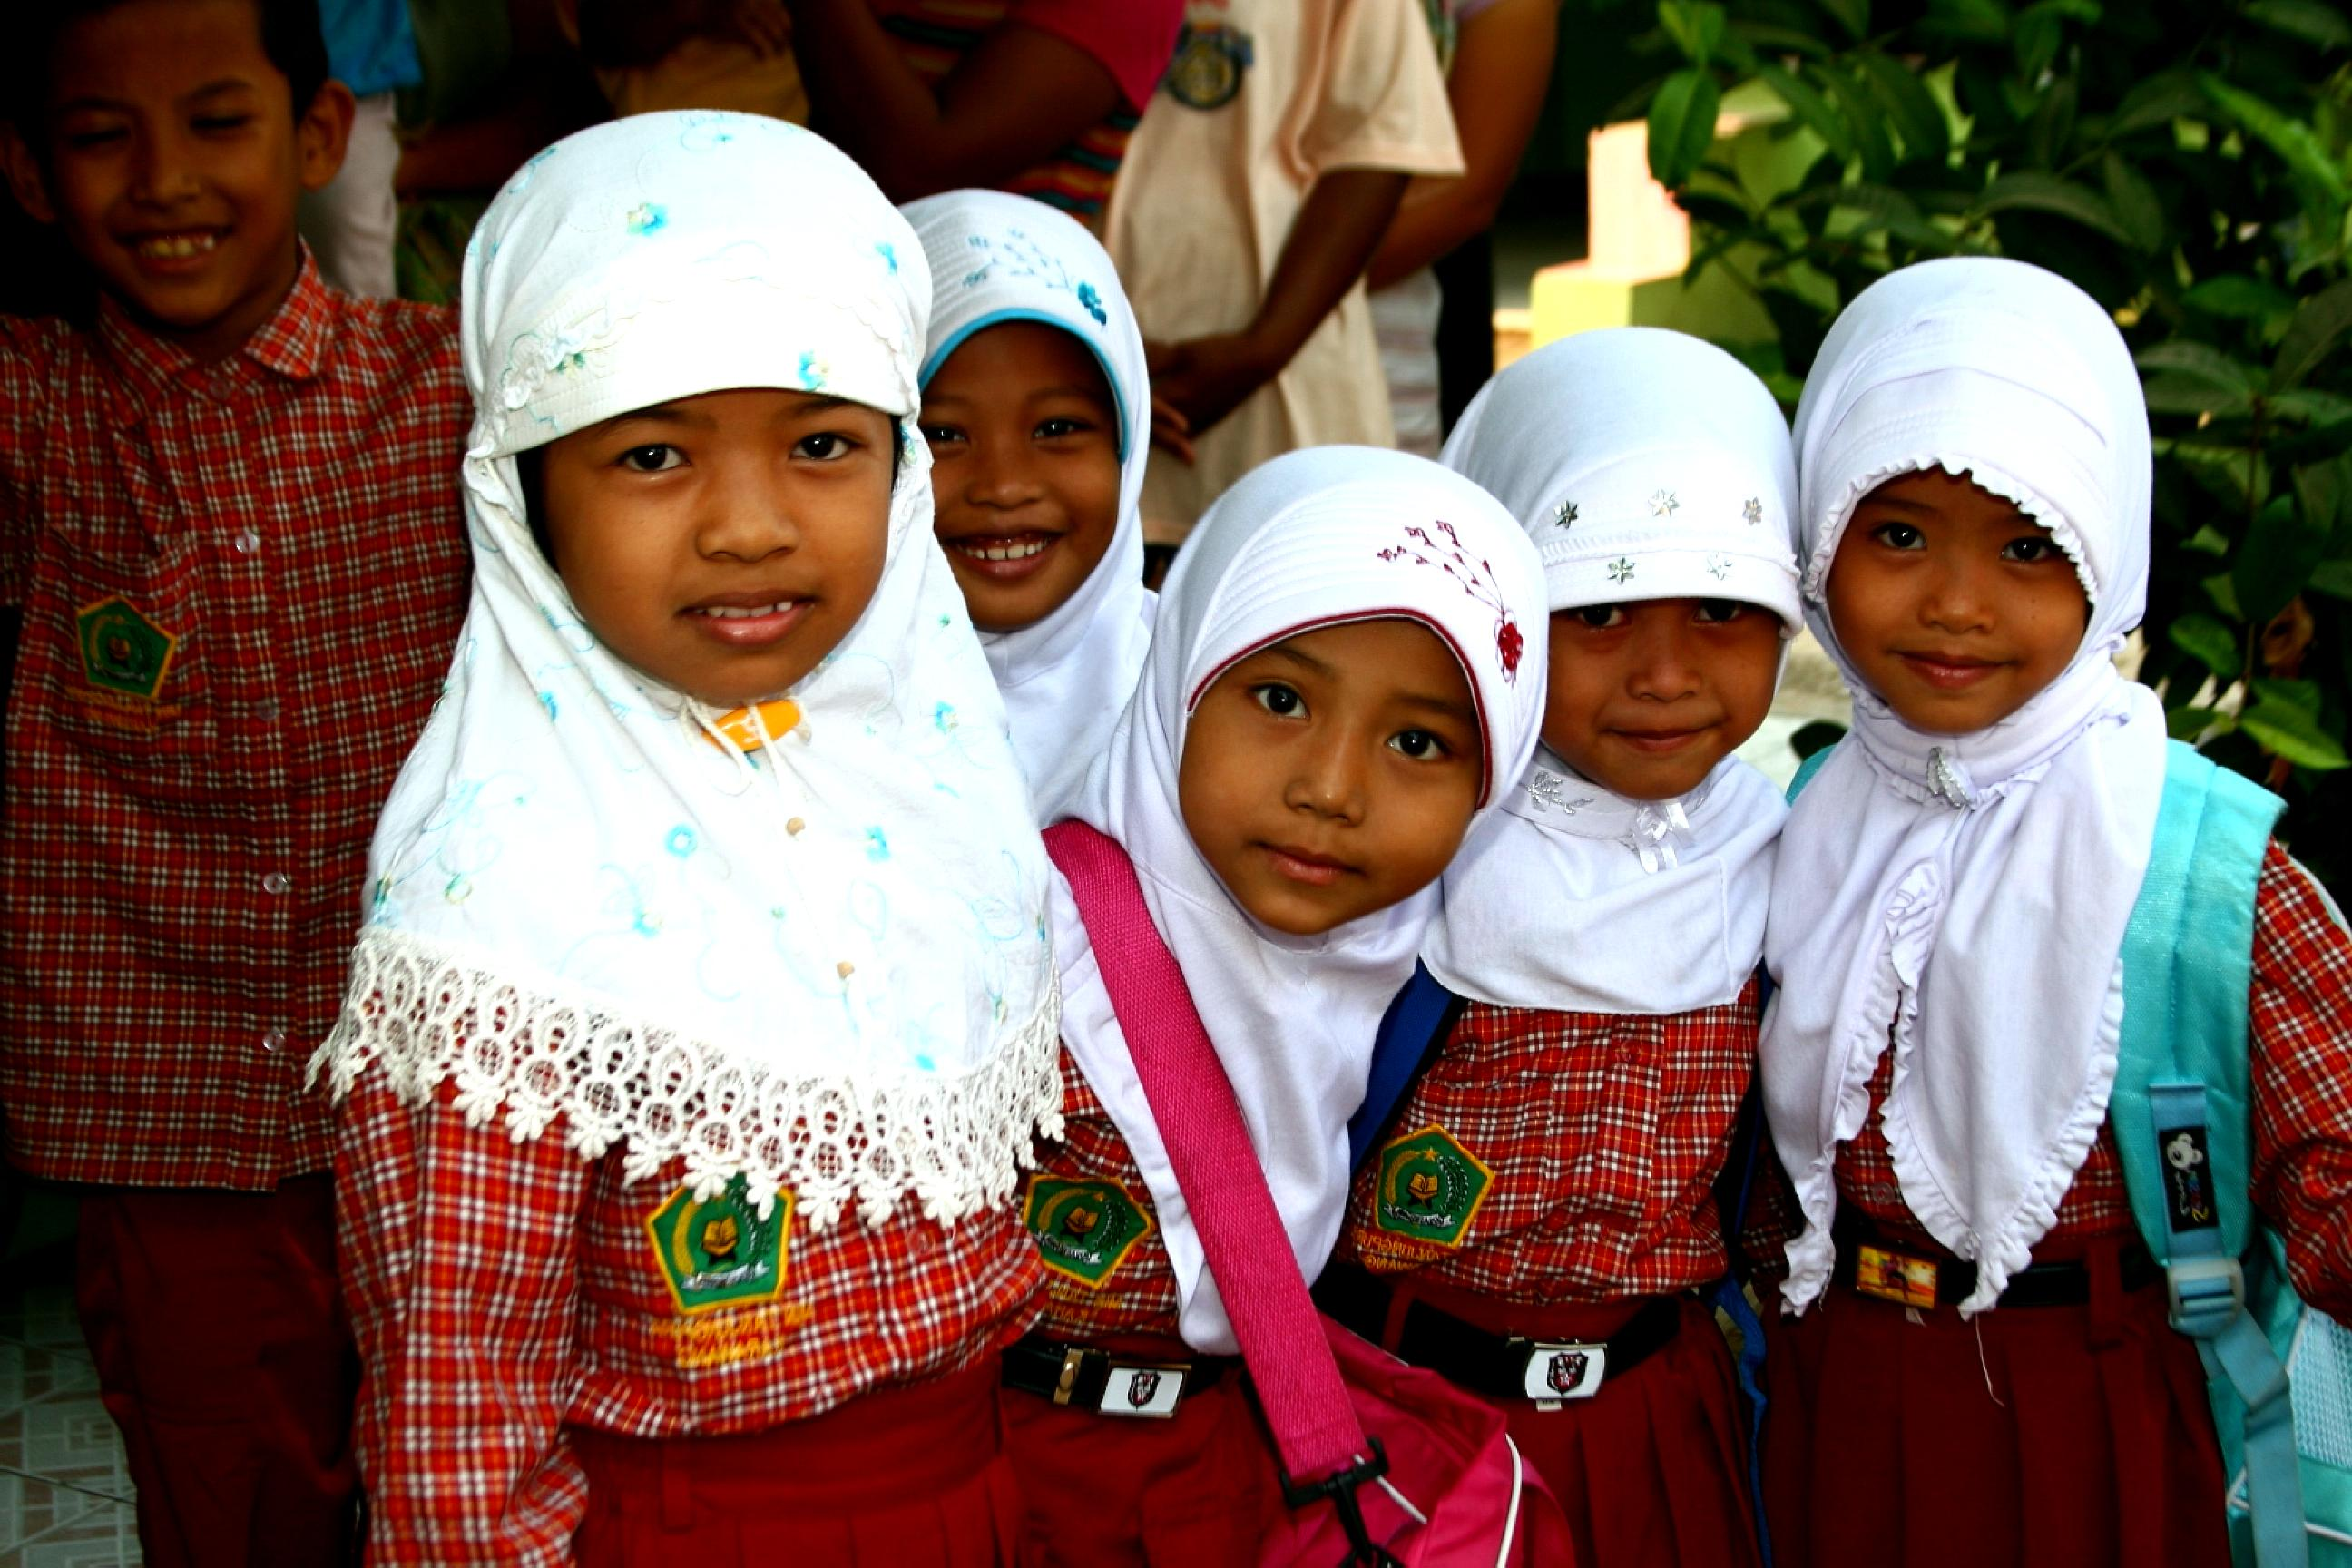 the six selves adolescent girls face How do i evolve from confusion and chaos to a capable, strong, compassionate woman age 15 for a complex set of reasons, most of what is known about adolescent girls focuses on the.